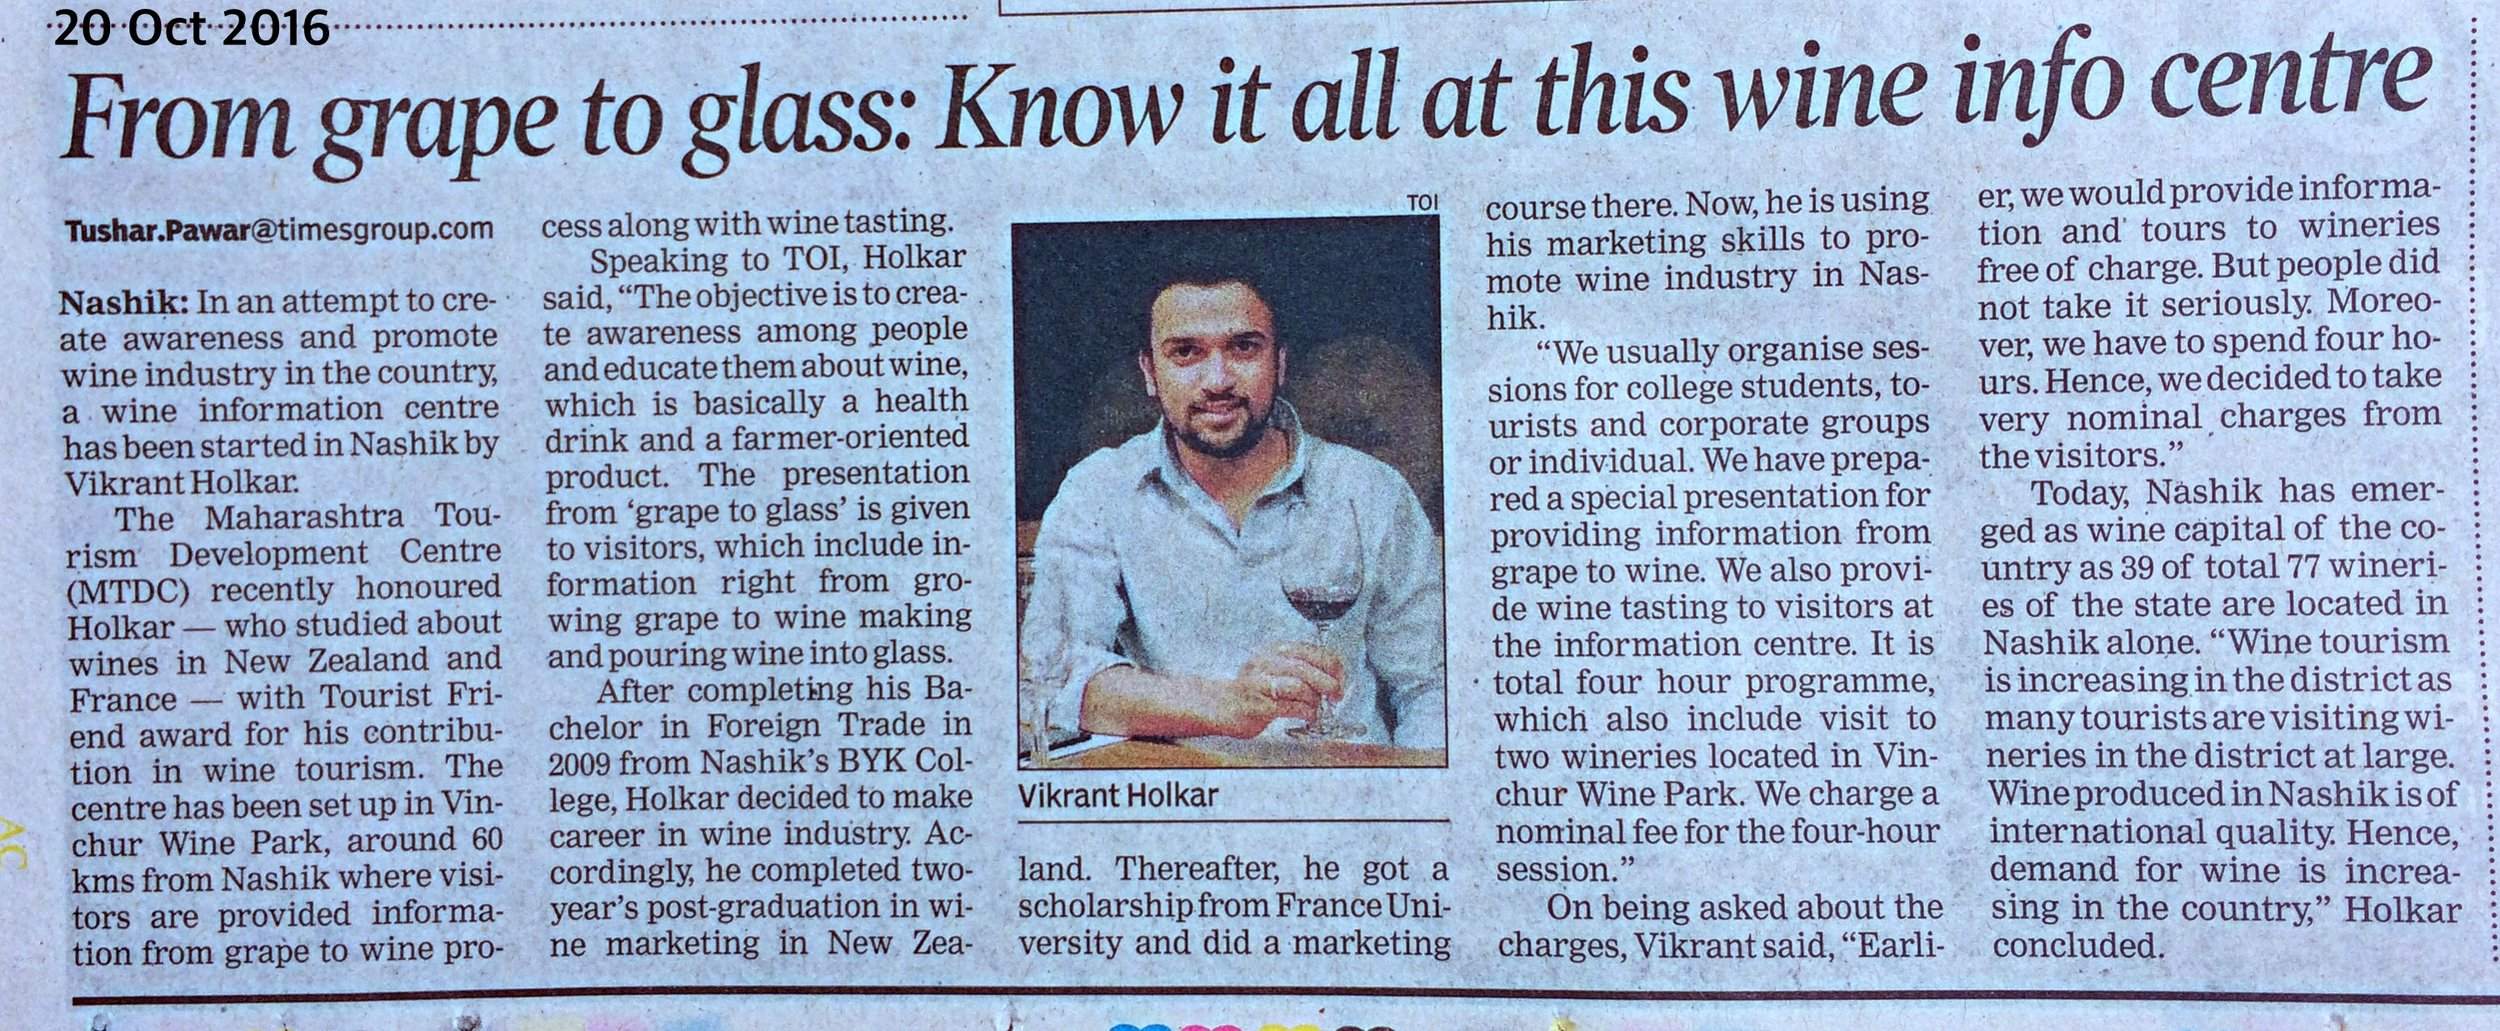 Times of India news on Wine Information Center by Red Grapes at Vinchur wine park